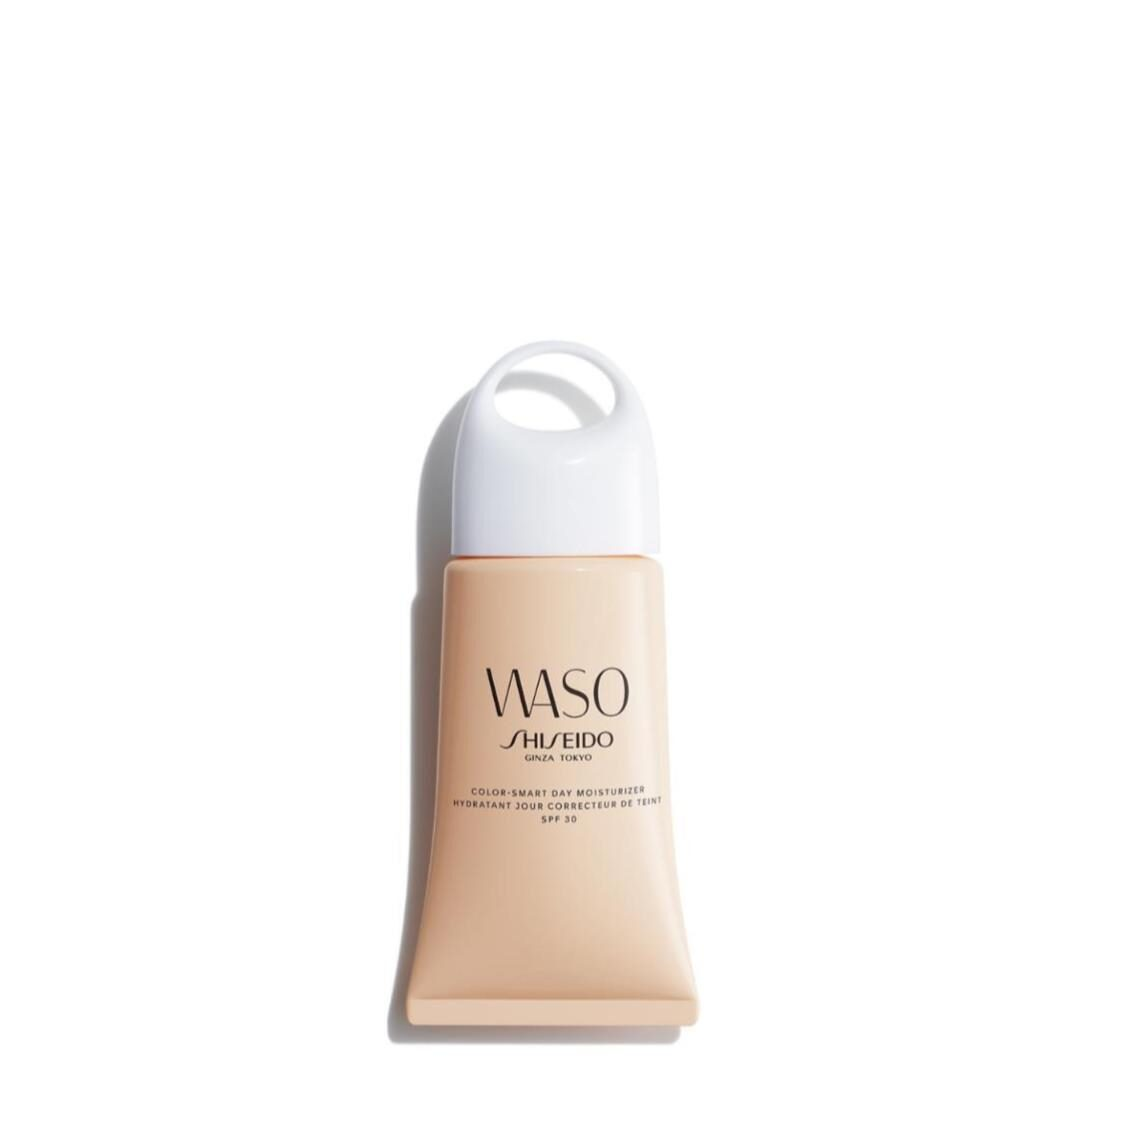 SHISEIDO WASO Color Smart Day Moisturizer 50ml